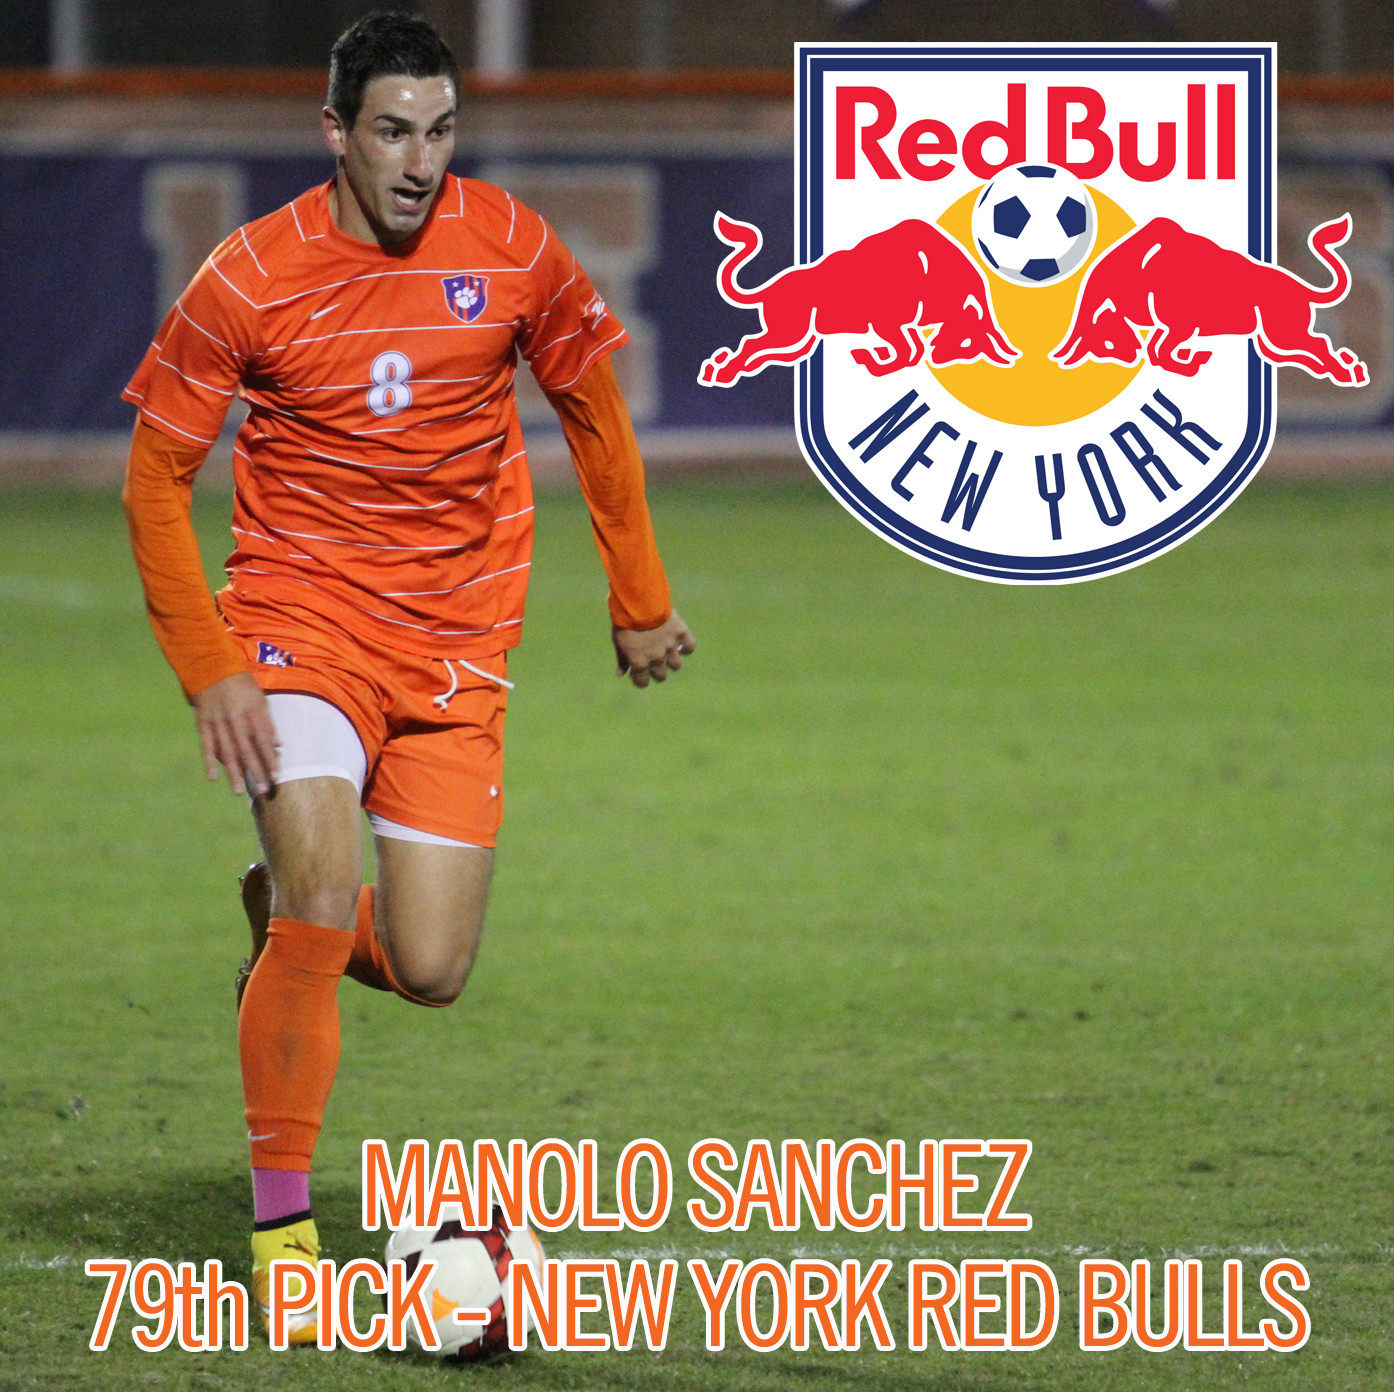 Manolo Sanchez Drafted by New York Red Bulls